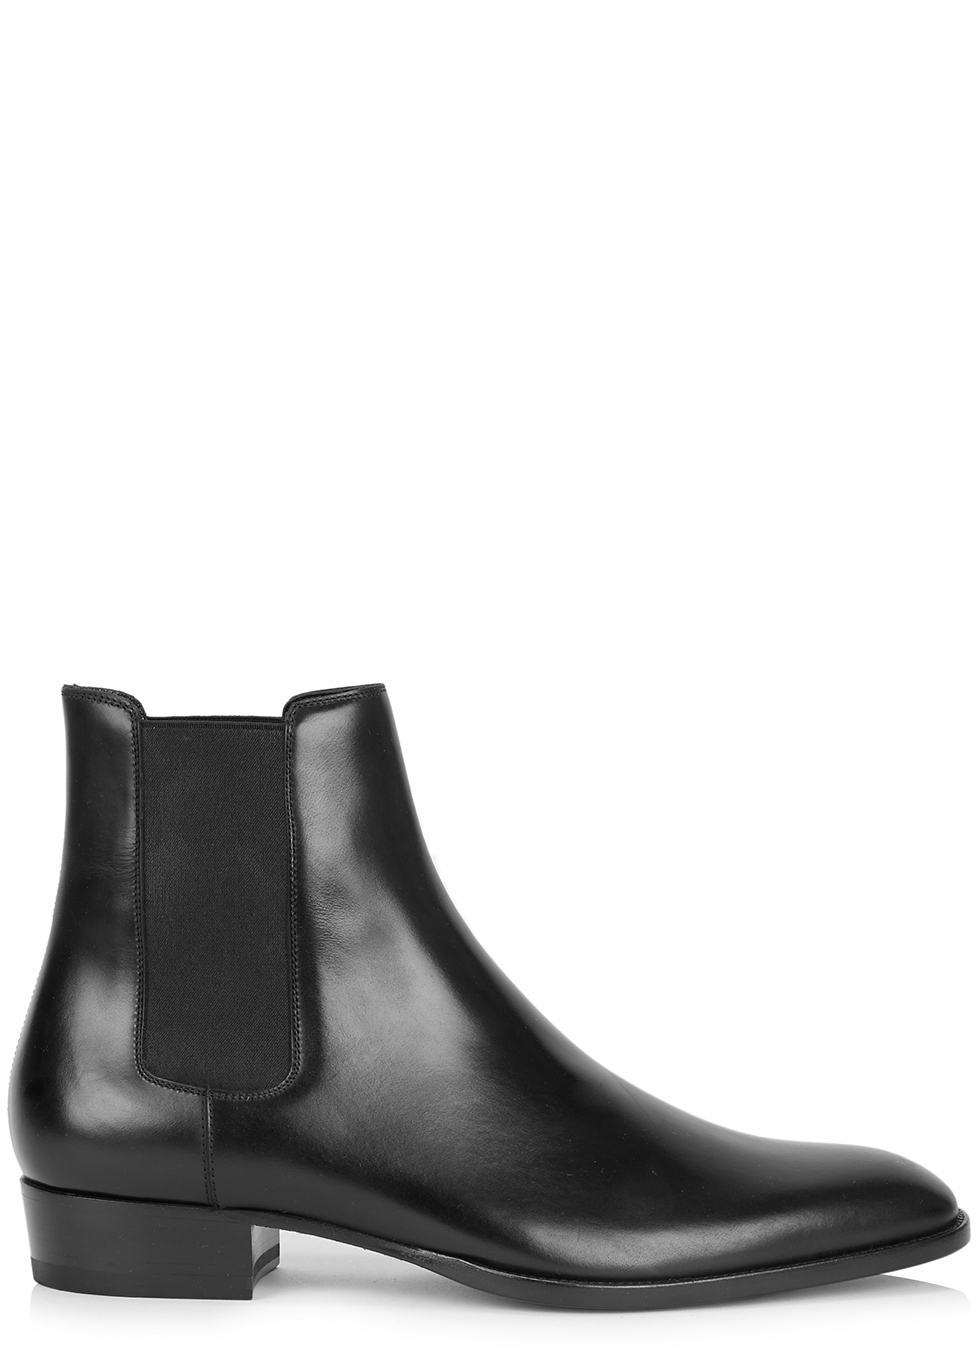 Wyatt black leather Chelsea boots